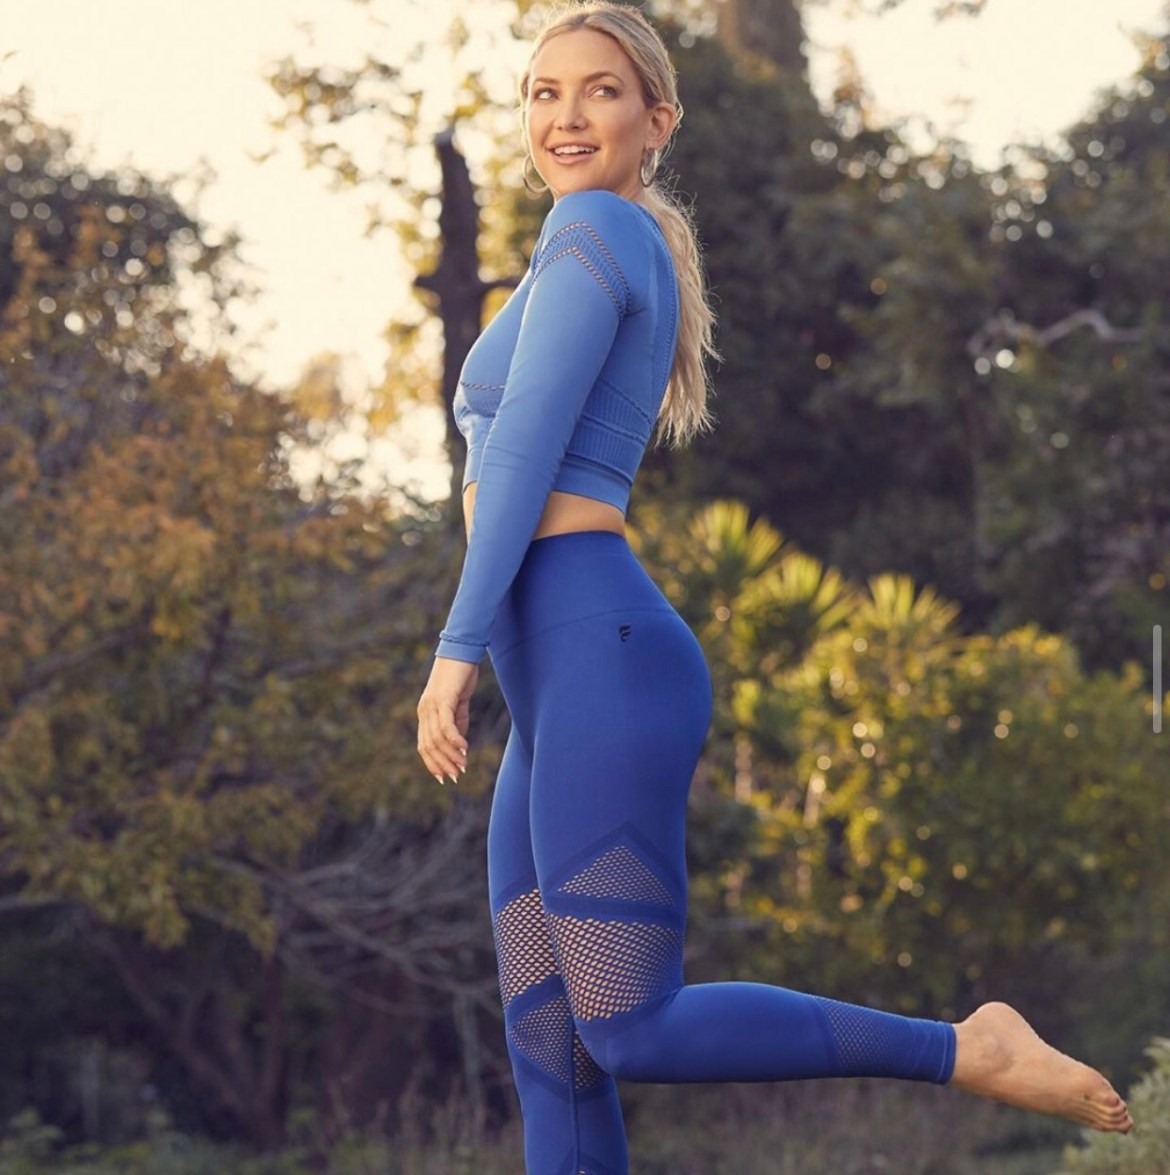 Kate Hudson Is a fit queen❤️